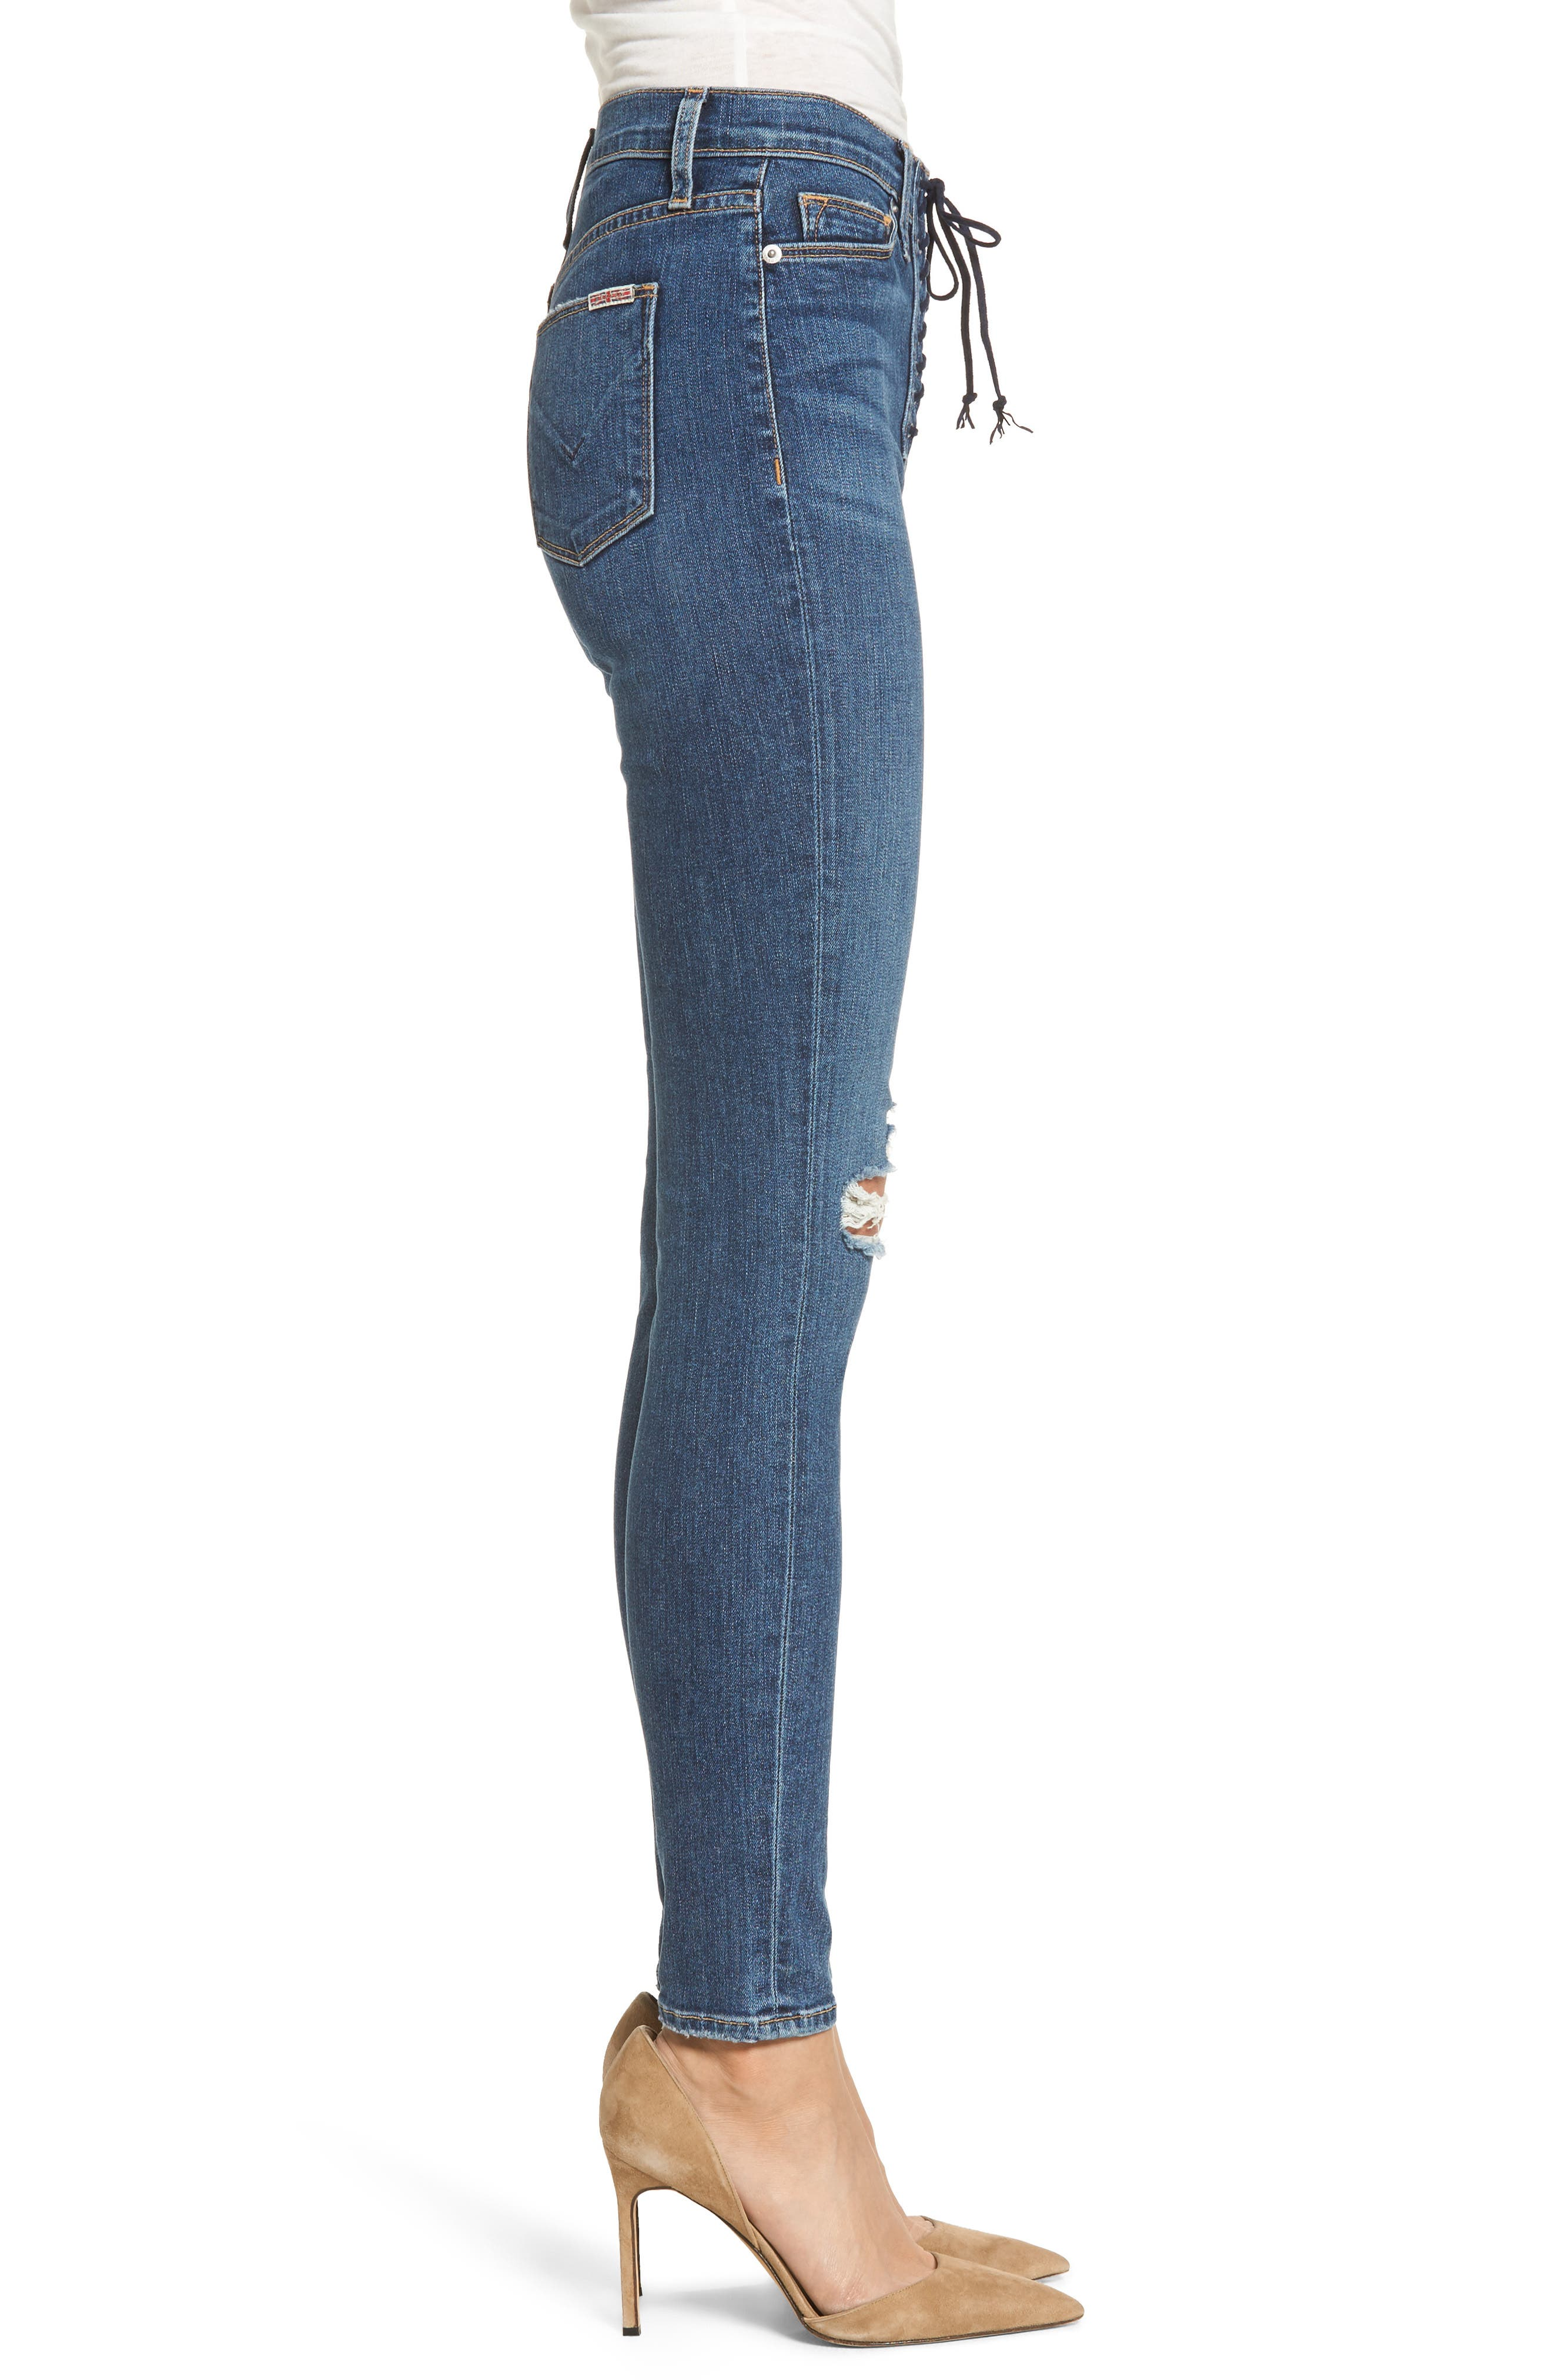 Bullocks Lace-Up High Waist Super Skinny Jeans,                             Alternate thumbnail 3, color,                             421